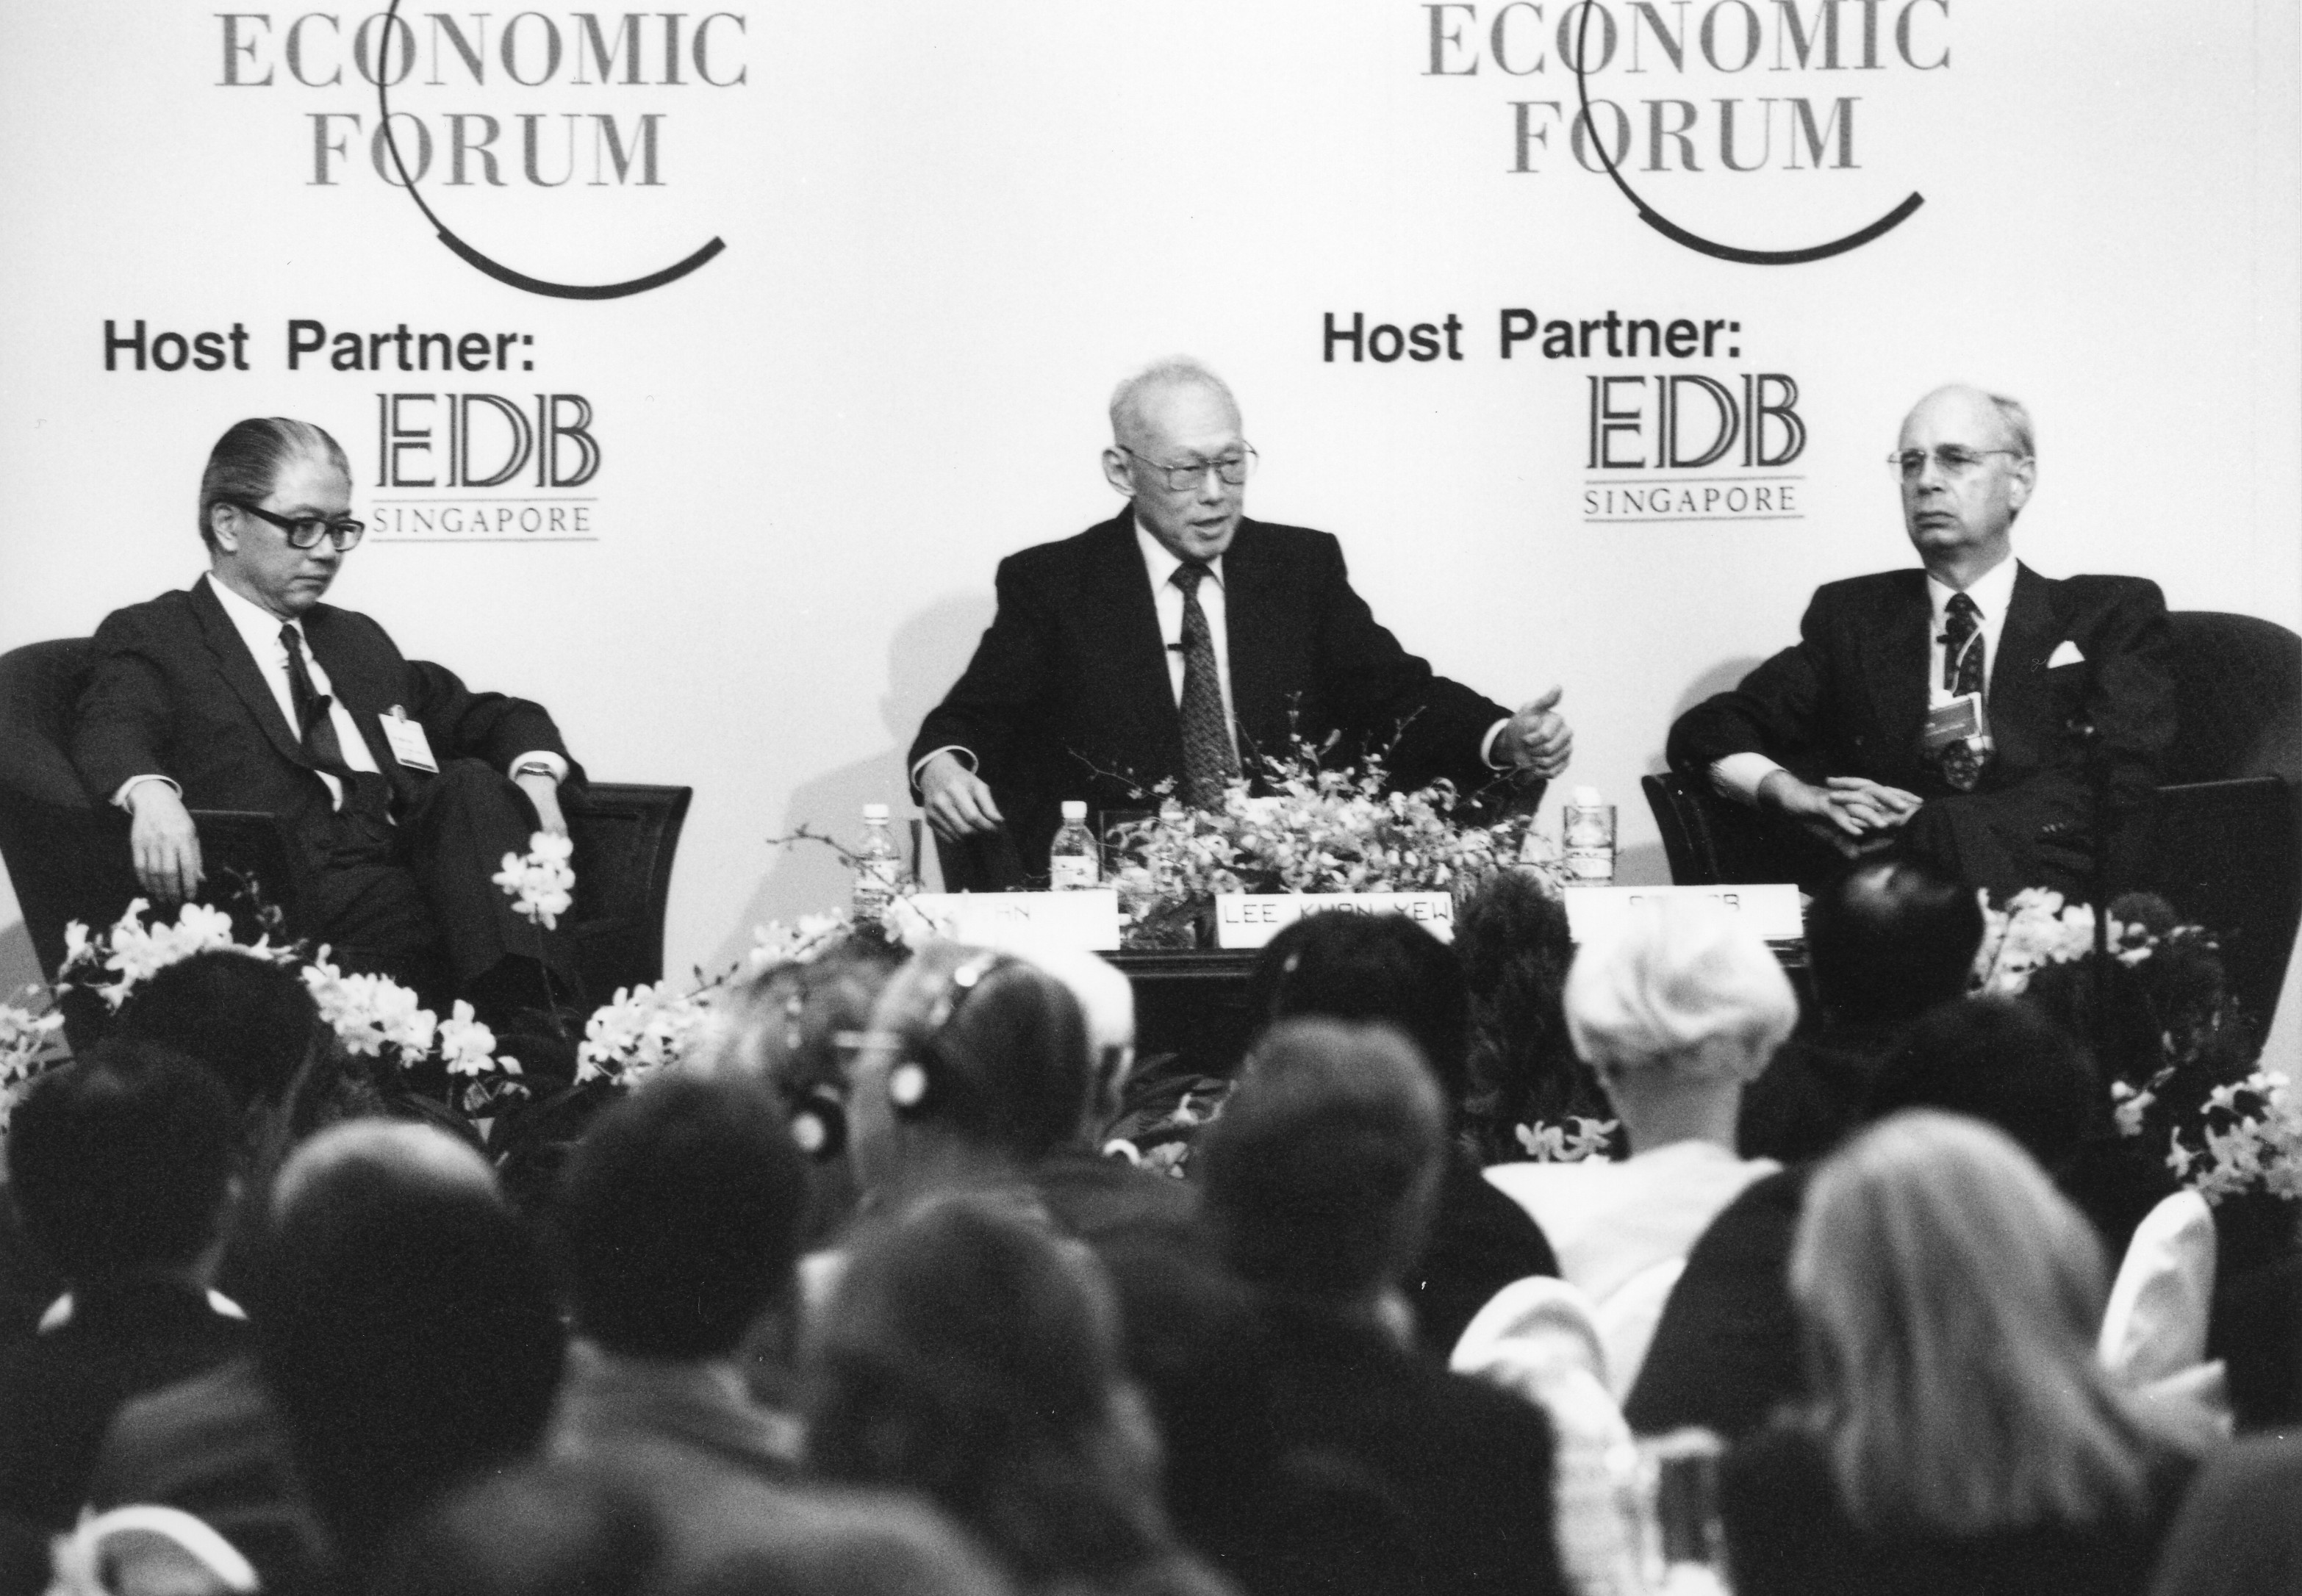 Klaus Schwab, Founder and Executive Chairman of the World Economic Forum, speaking together with Lee Kuan Yew, Prime Minister and Tony Tan Keng-Yam, Deputy Prime Minister of Singapore at the East Asia Economic Forum in Singapore, 1994.